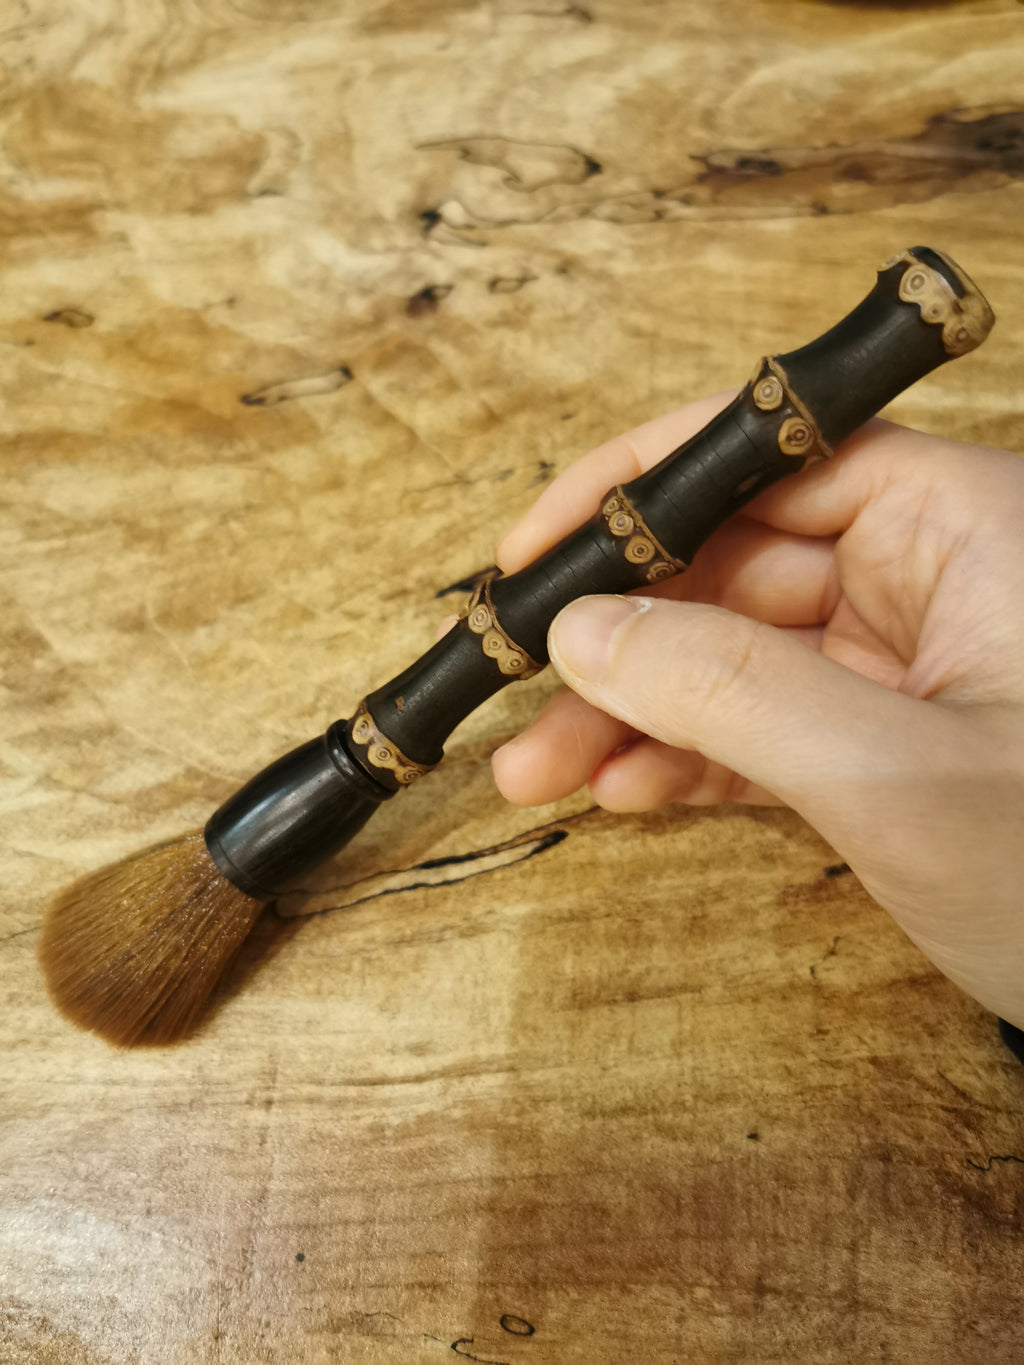 养壶笔Raising pot brush